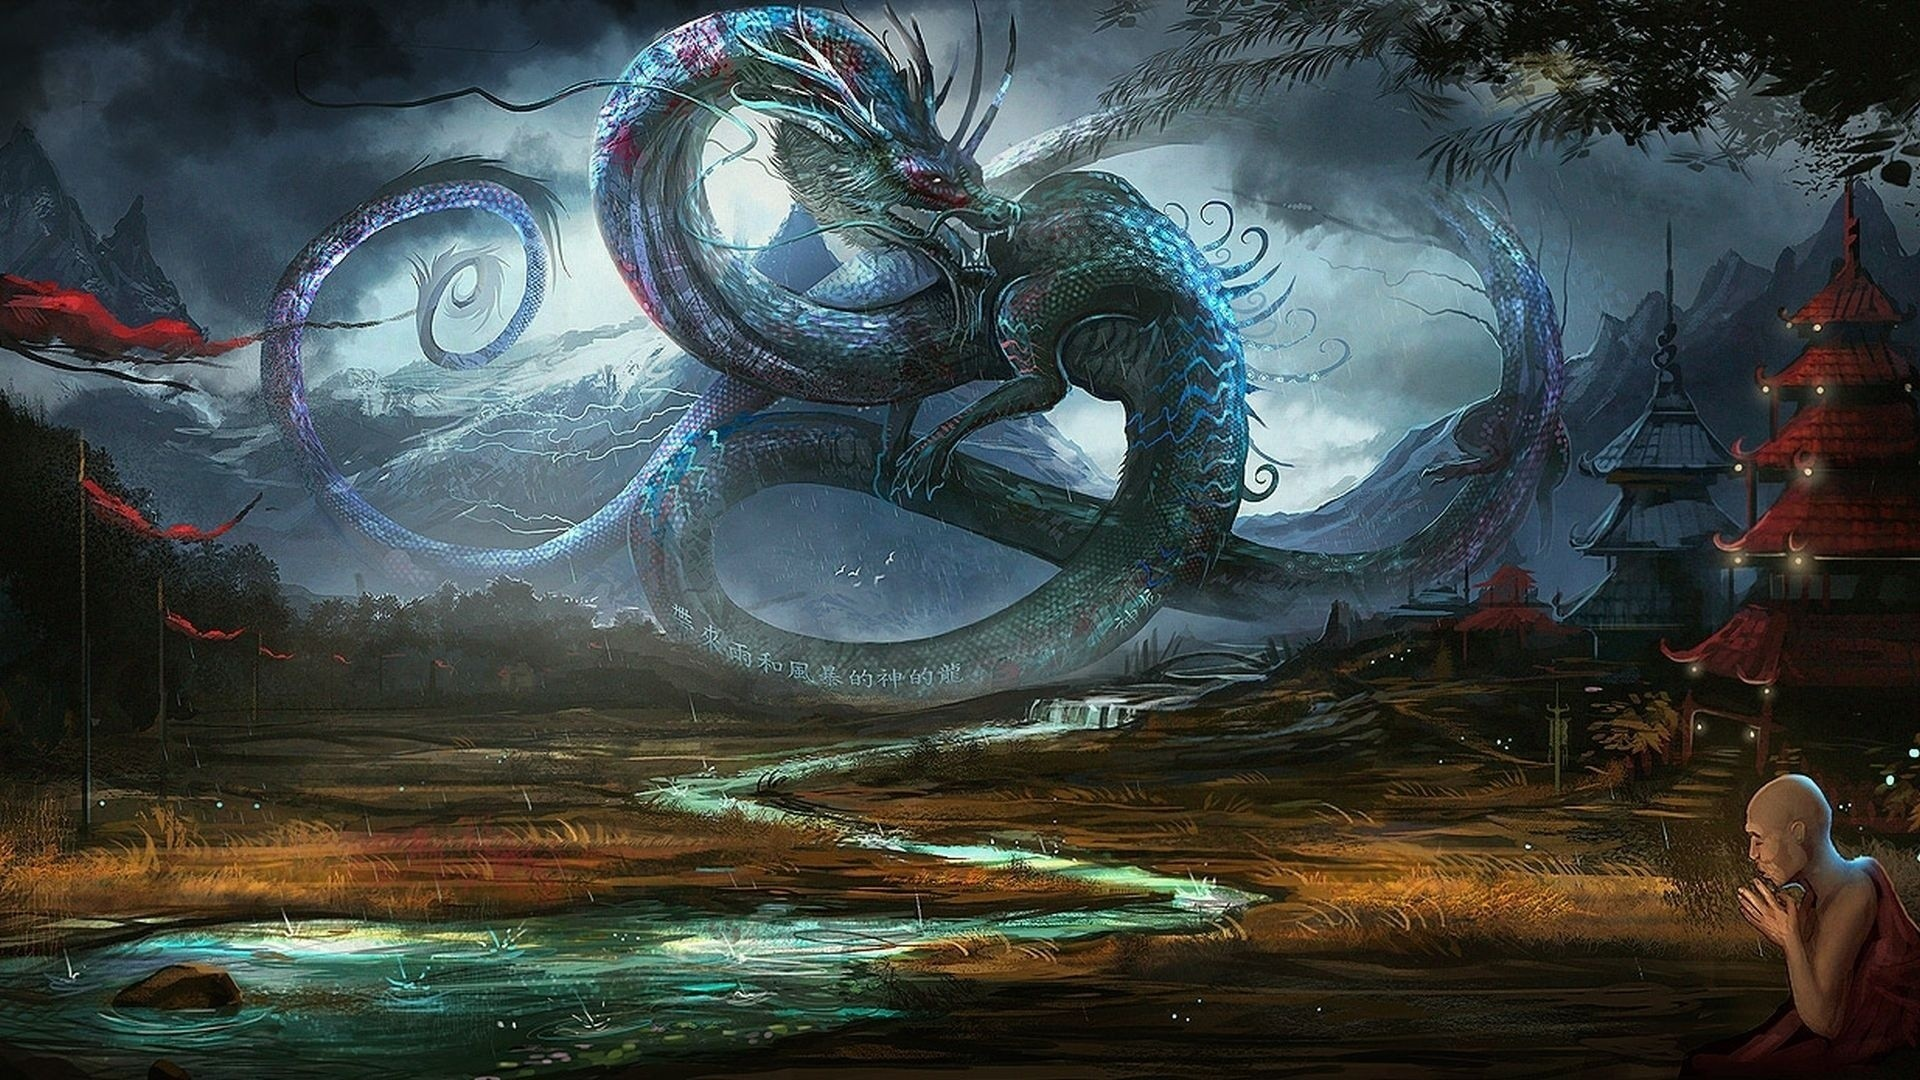 1920x1080 Full Hd Wallpapers: 47+ Dragon Wallpapers ·① Download Free Amazing Full HD